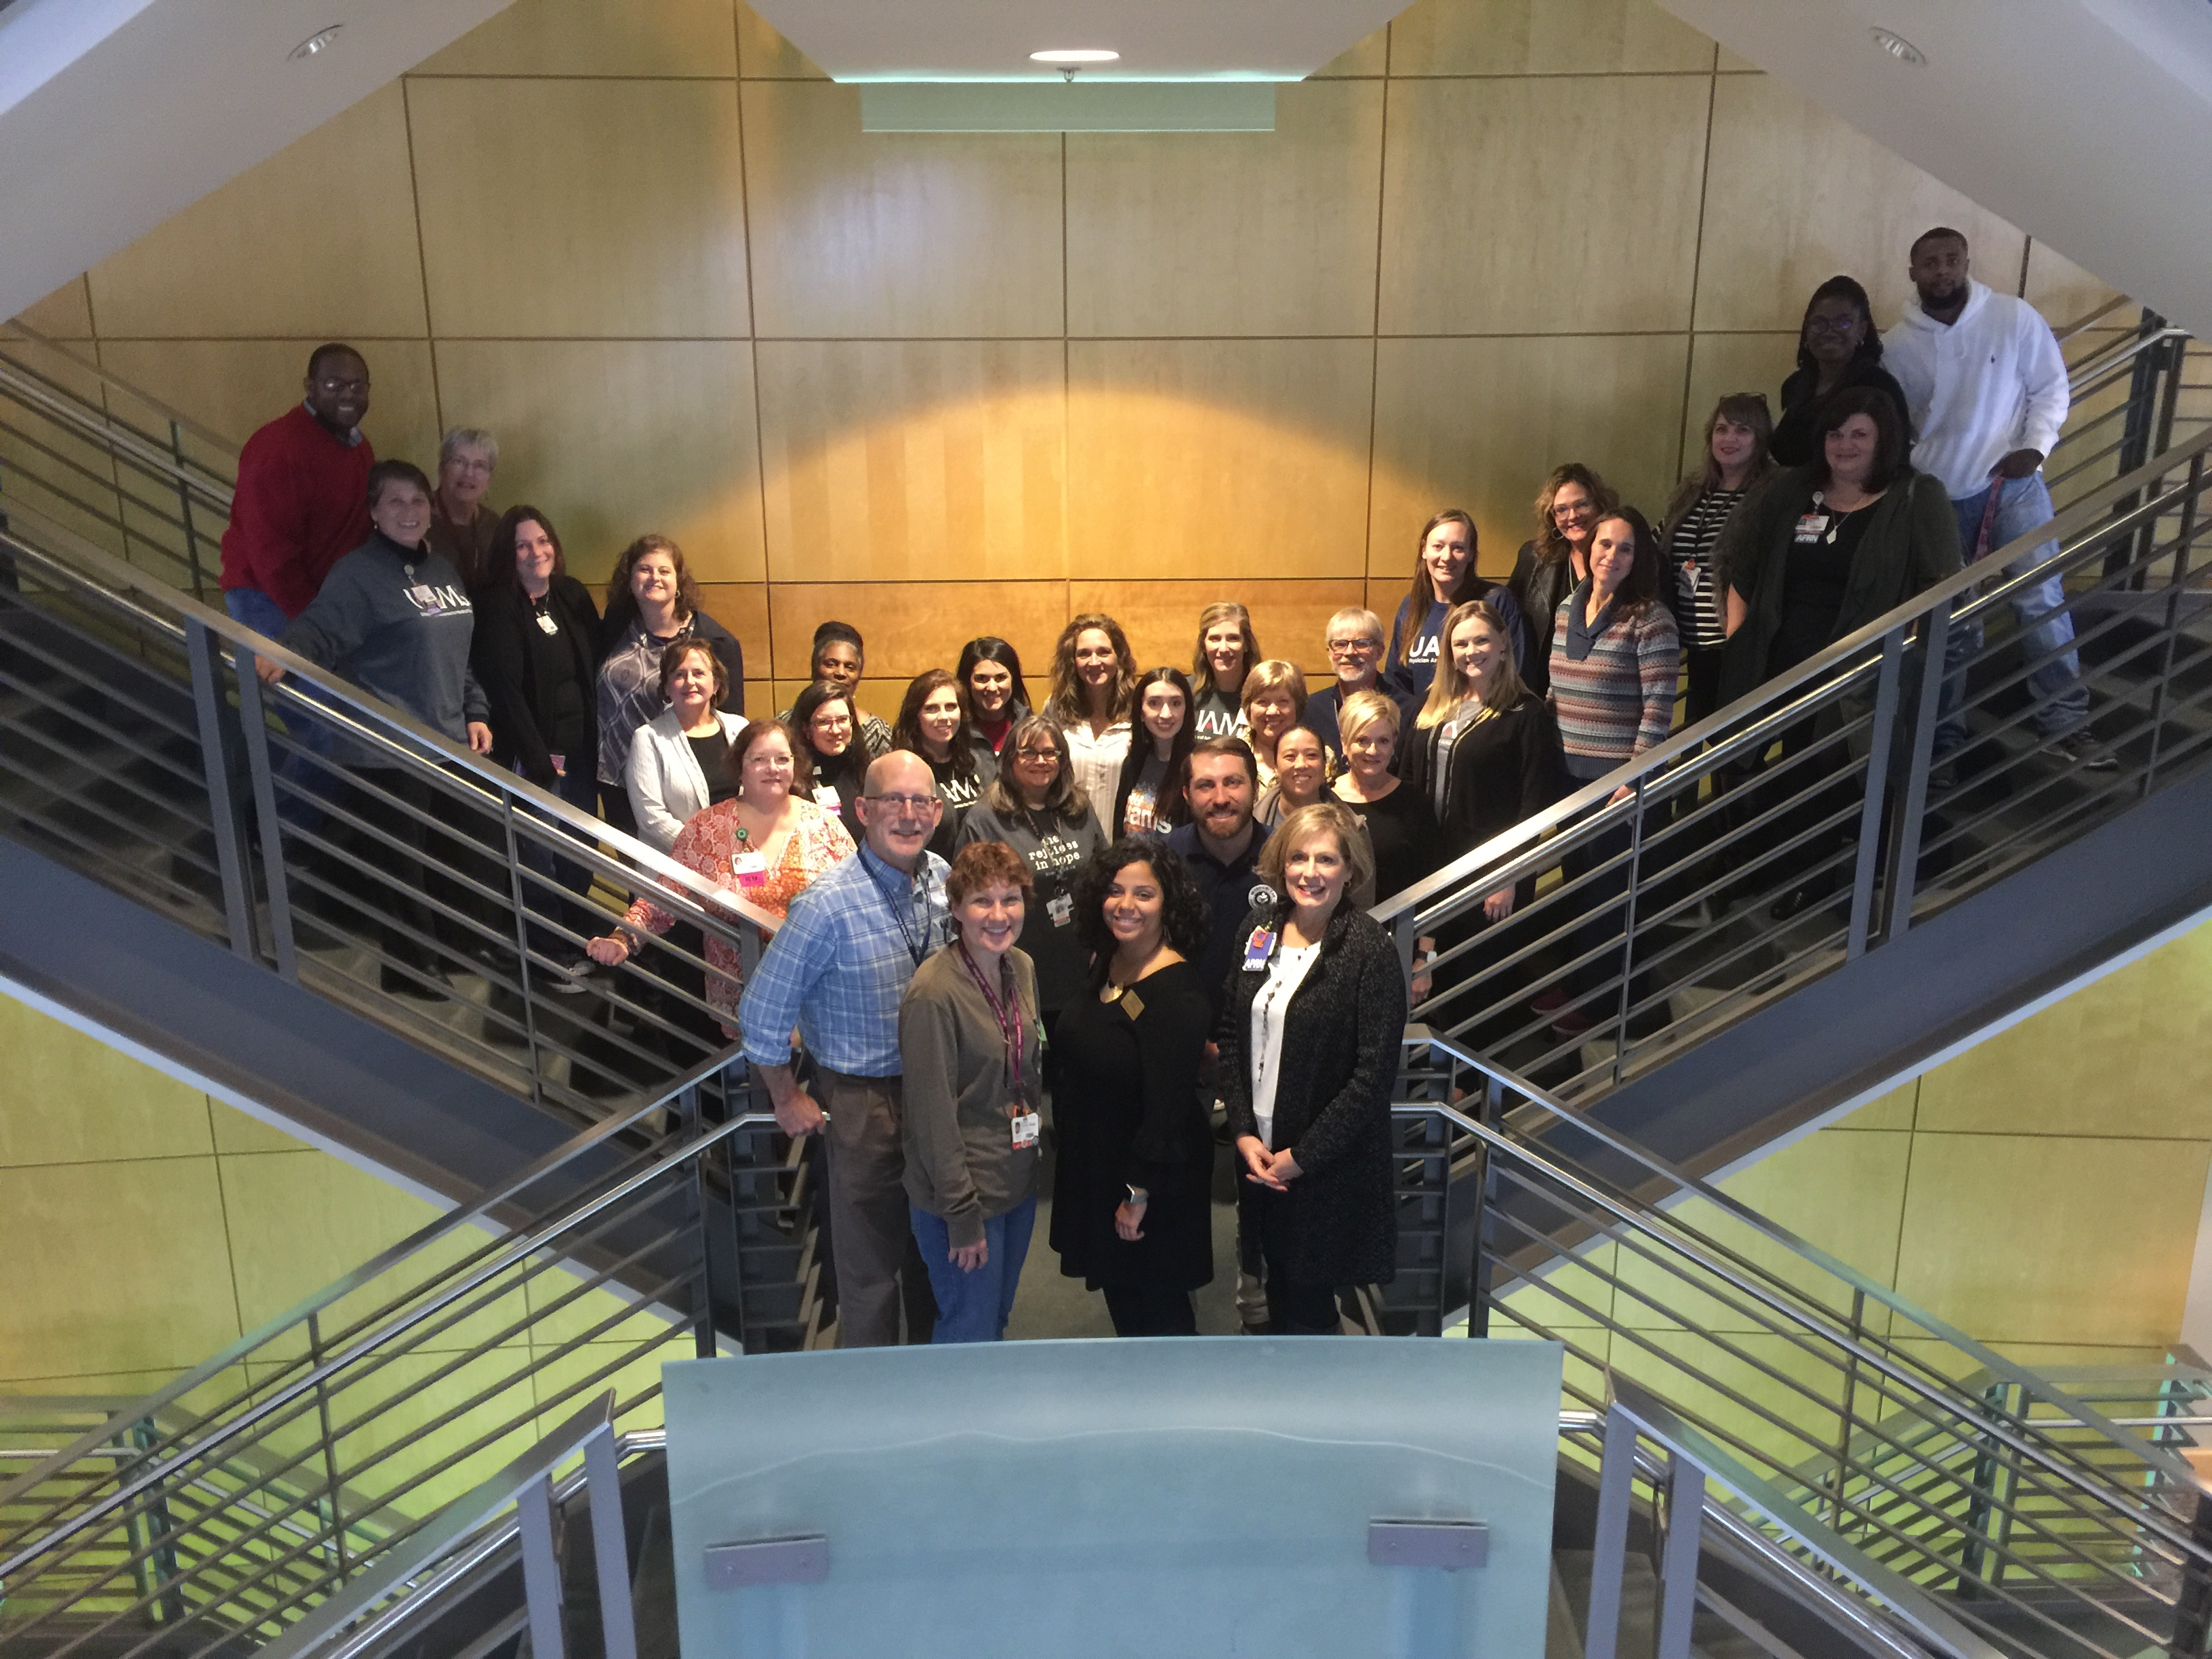 Faculty, staff and students from throughout UAMS participated in the CAPS facilitator training.